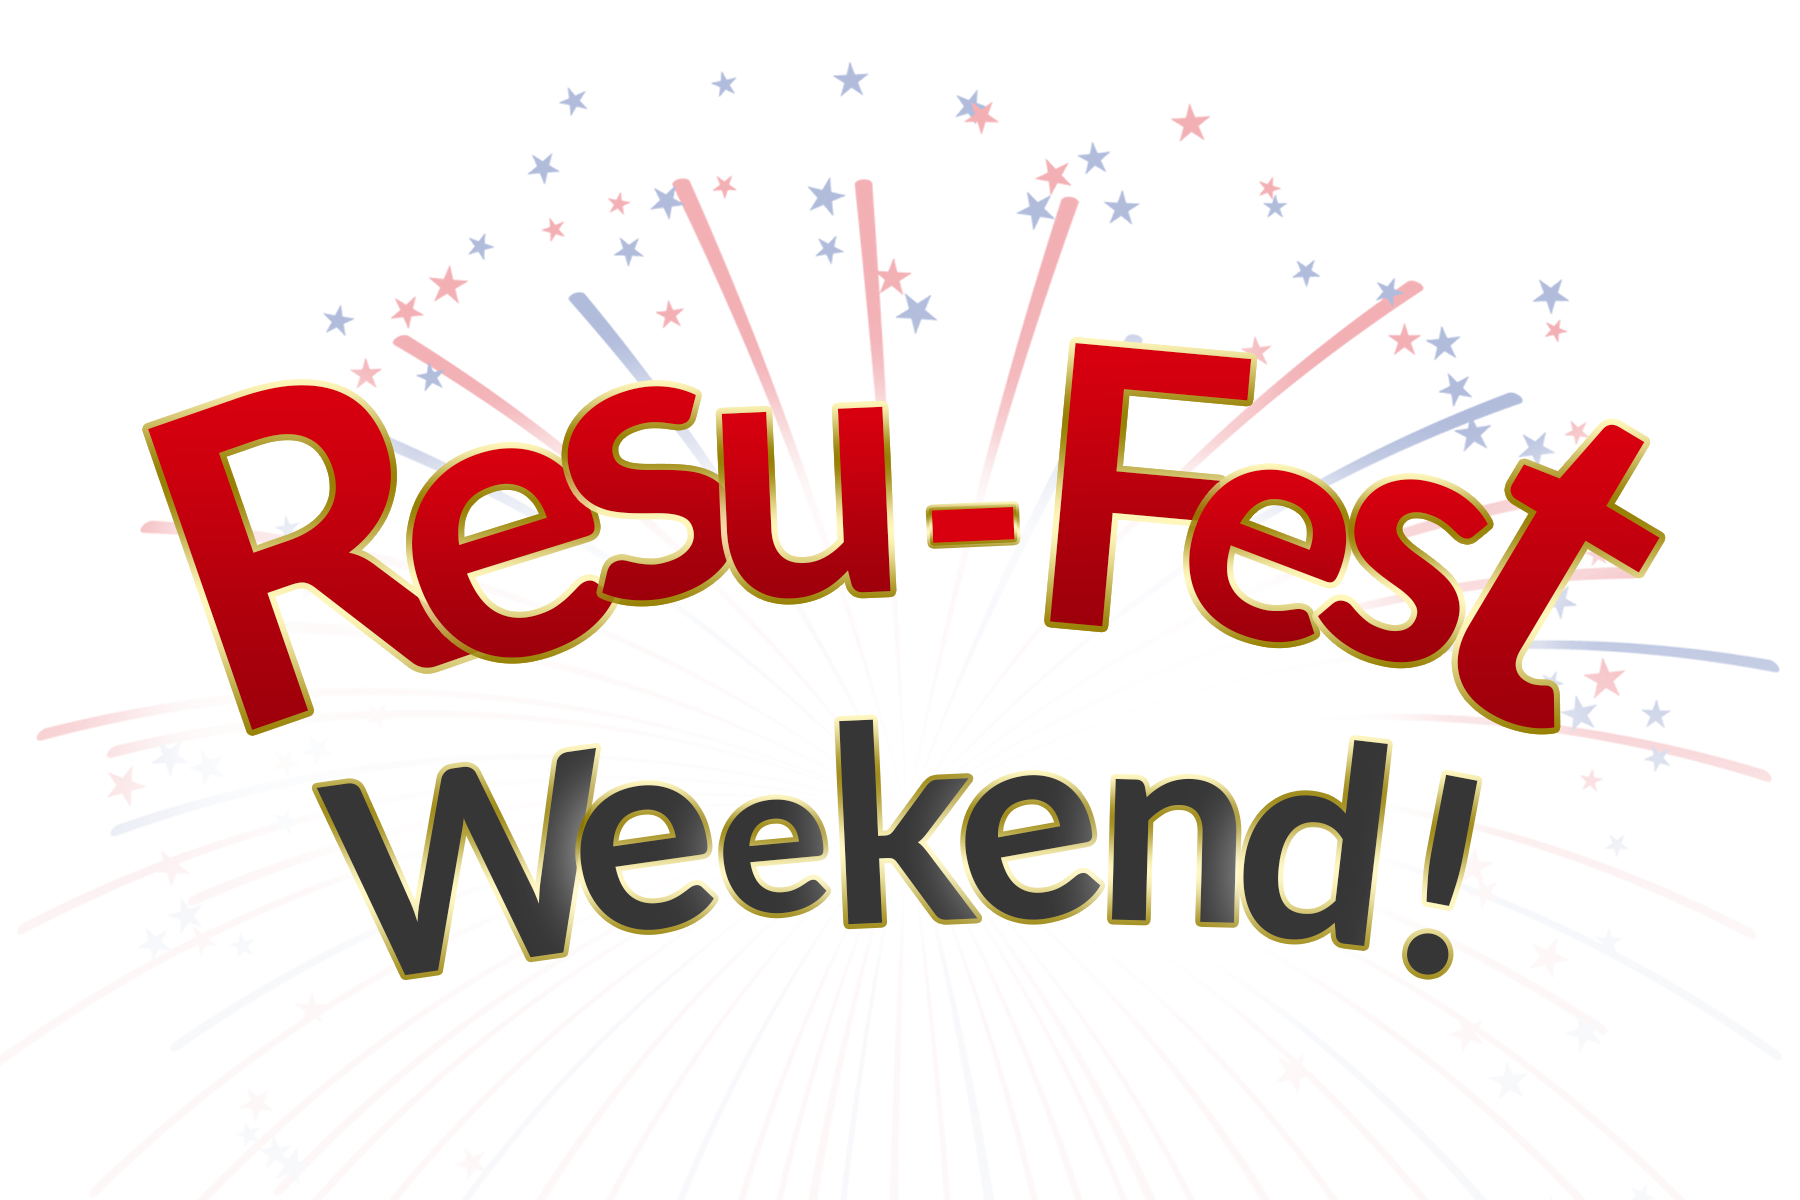 RESU-FEST WEEKEND 2019 logo 2